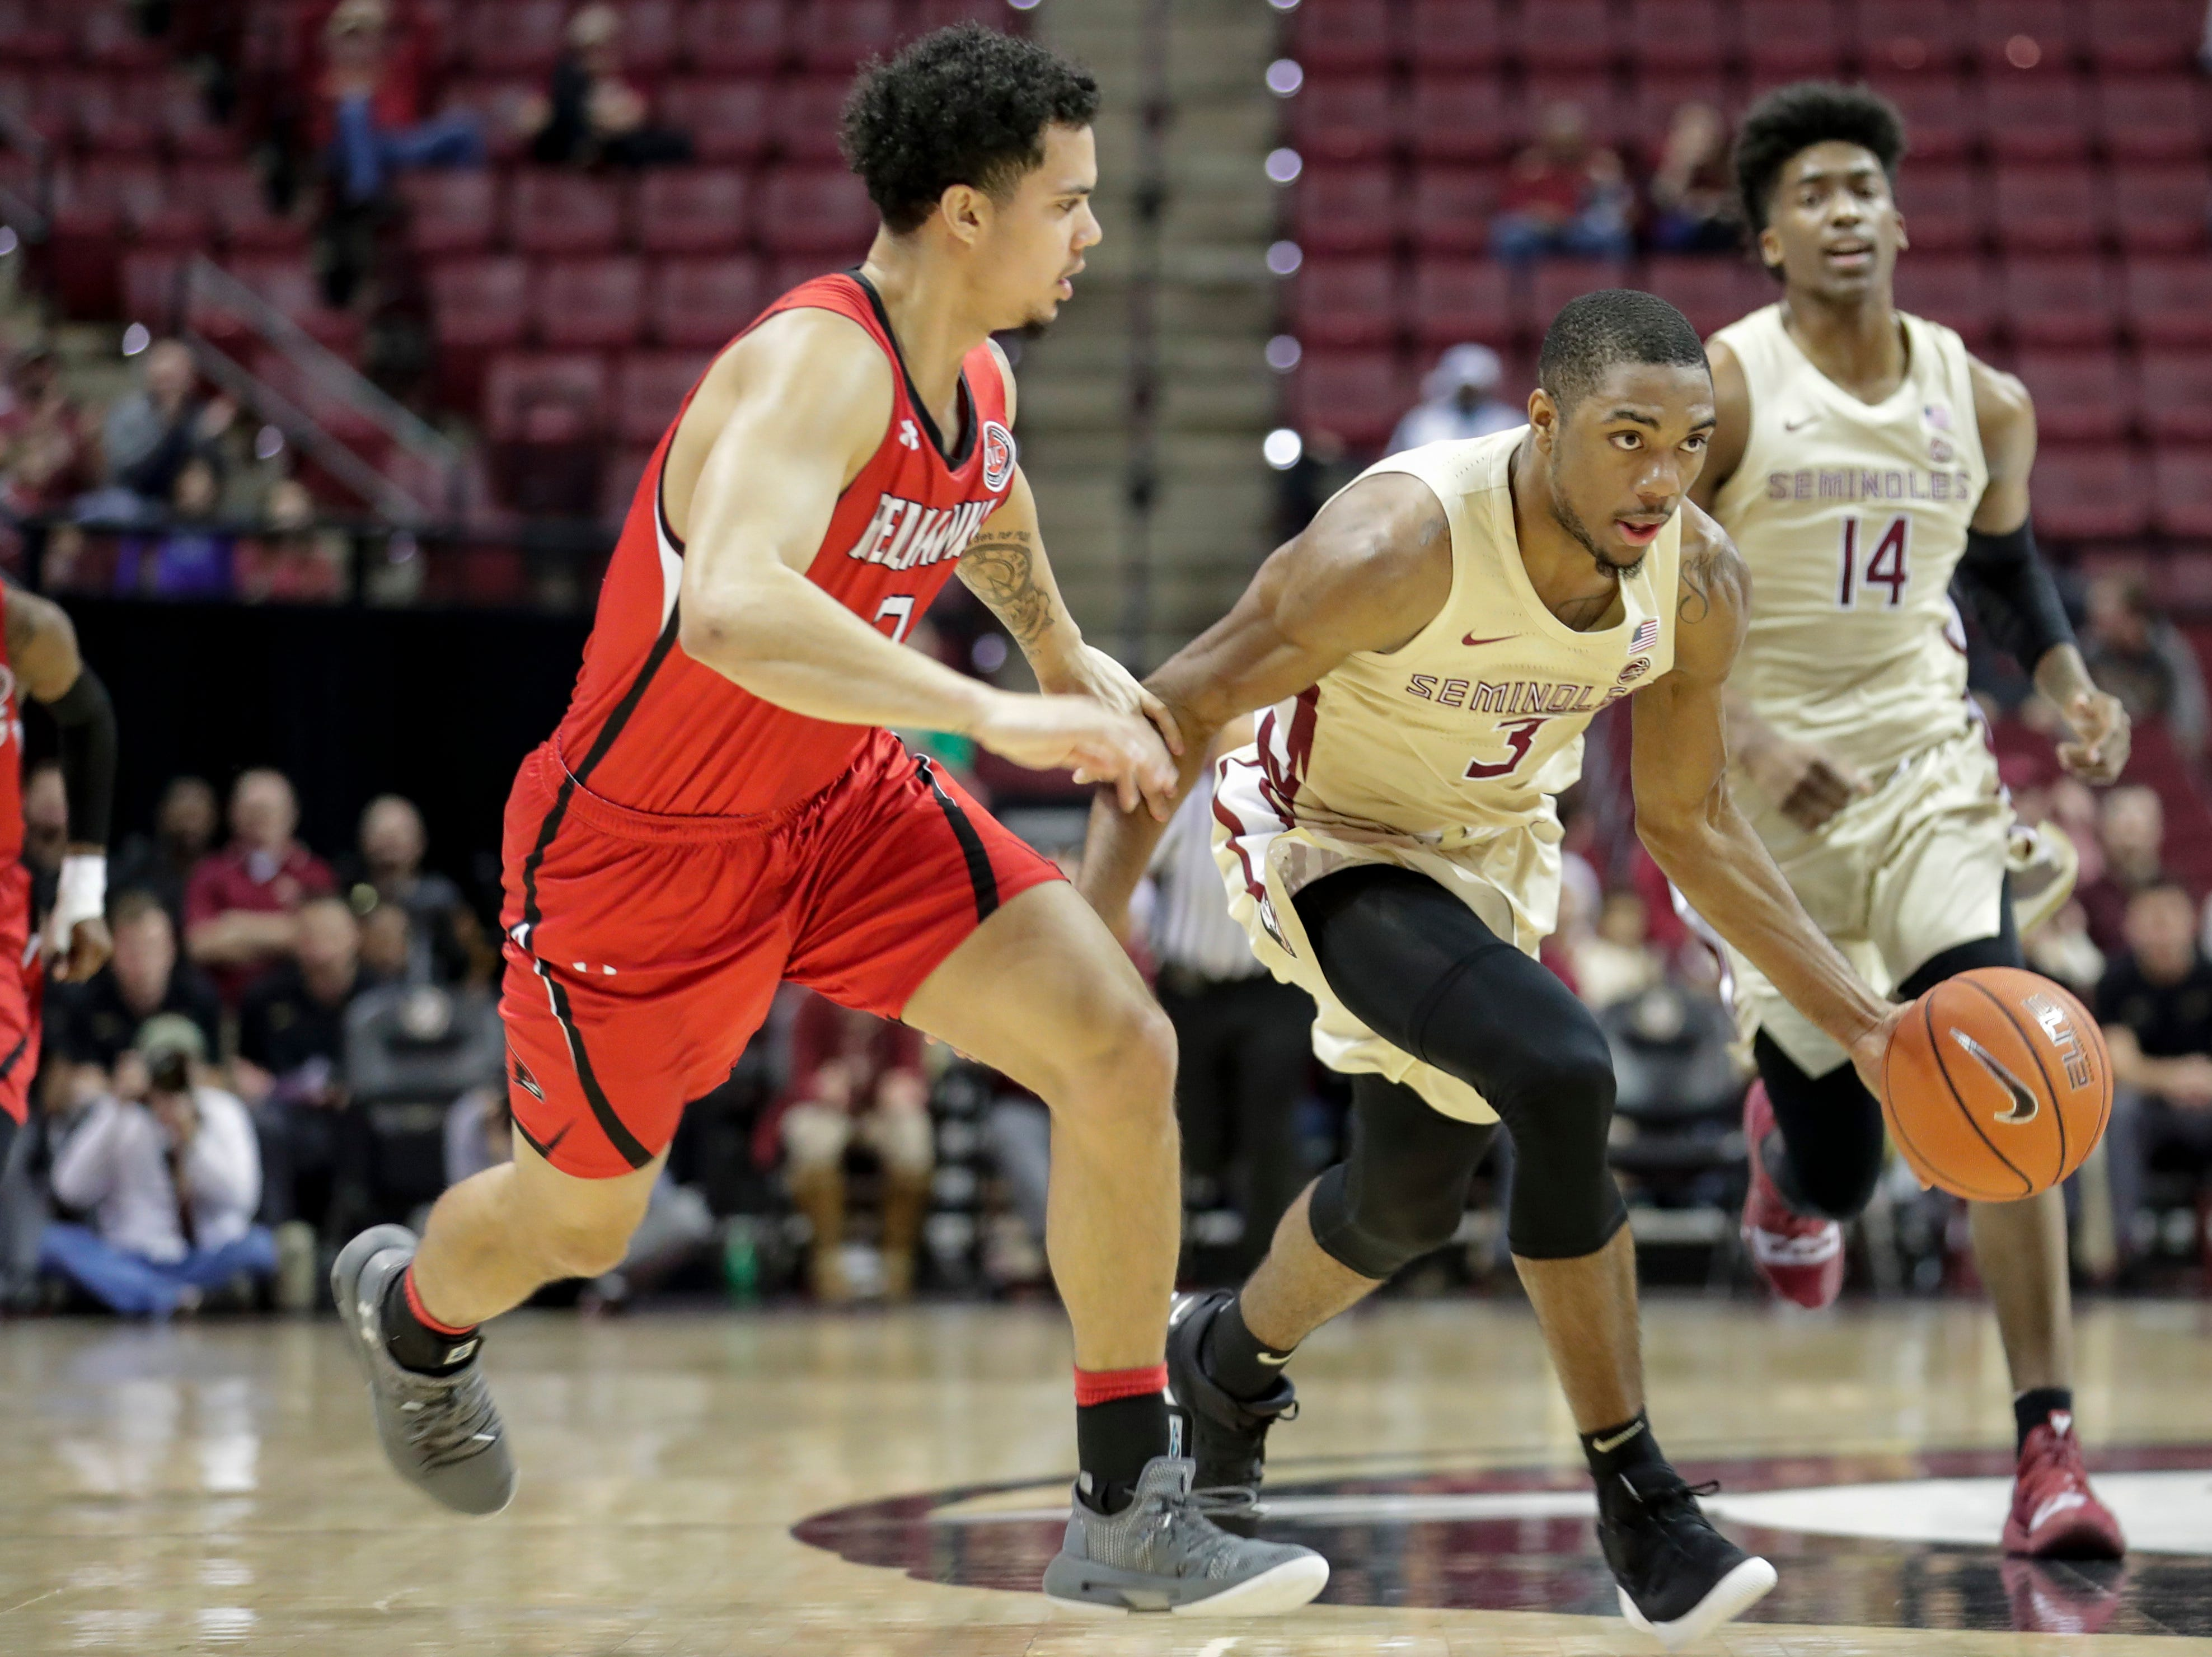 Florida State Seminoles guard Trent Forrest (3) drives down the court during a game between Florida State University and Southeast Missouri State University at the Donald L. Tucker Civic Center Monday, Dec. 17, 2018.